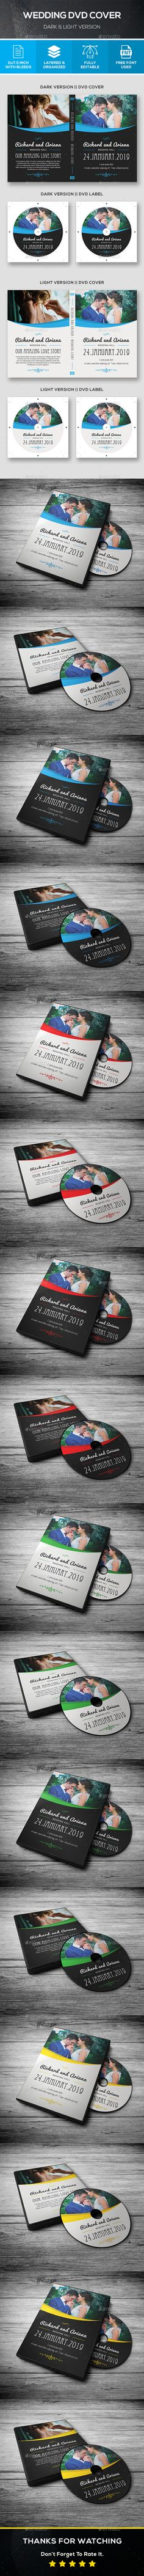 98 best free cd dvd cover templates images on pinterest in 2018